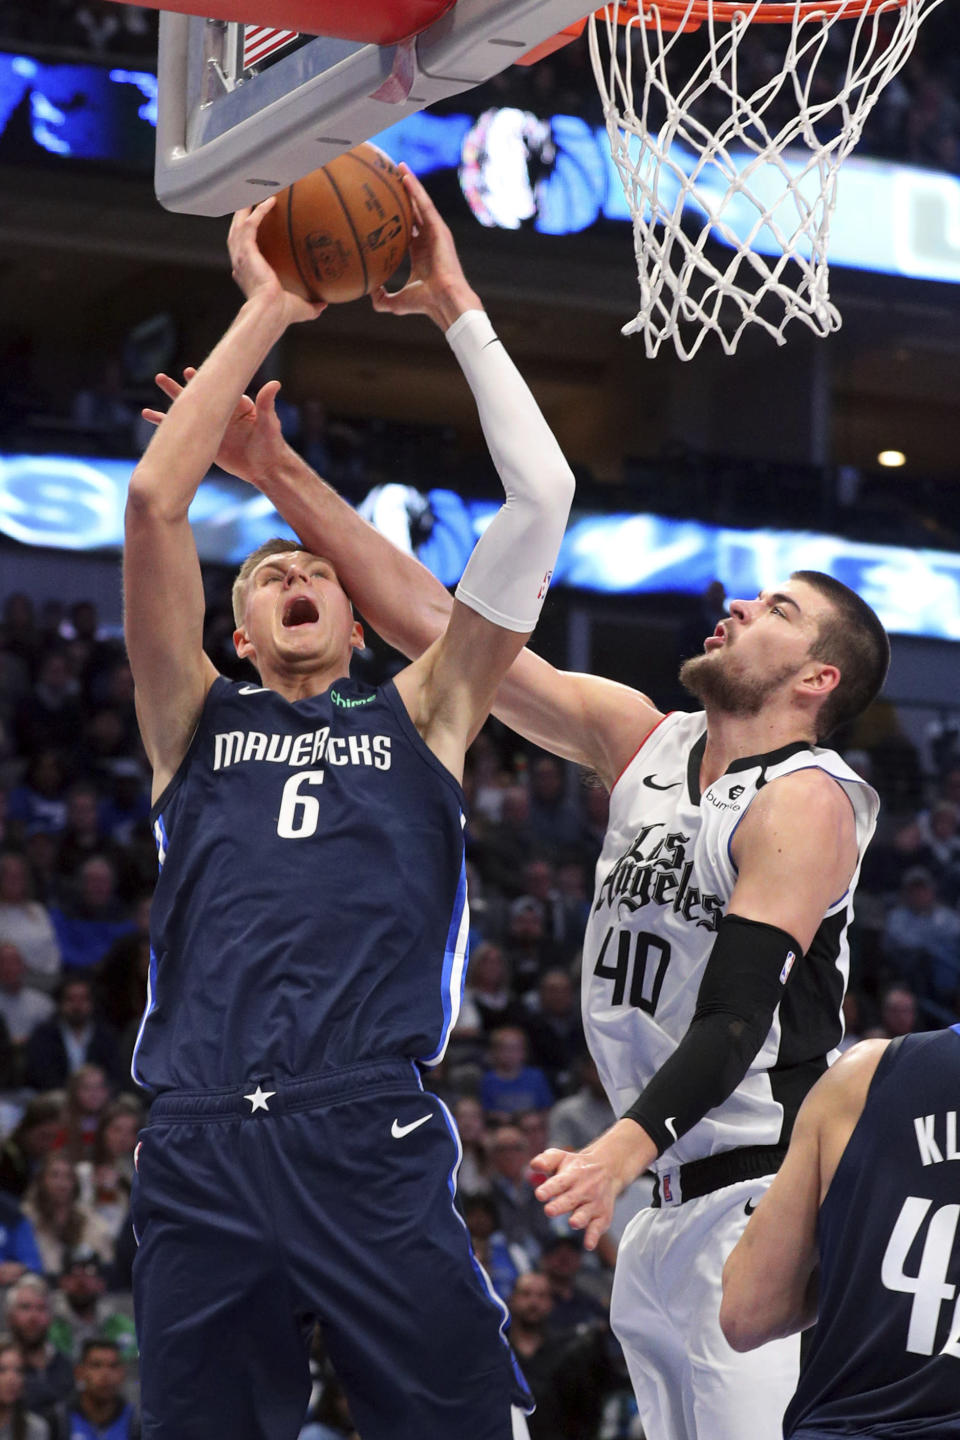 Dallas Mavericks forward Kristaps Porzingis (6) gets fouled as he goes up for a shot against Los Angeles Clippers center Ivica Zubac (40) during the first half of an NBA basketball game Tuesday, Jan. 21, 2020 in Dallas. (AP Photo/Richard W. Rodriguez)